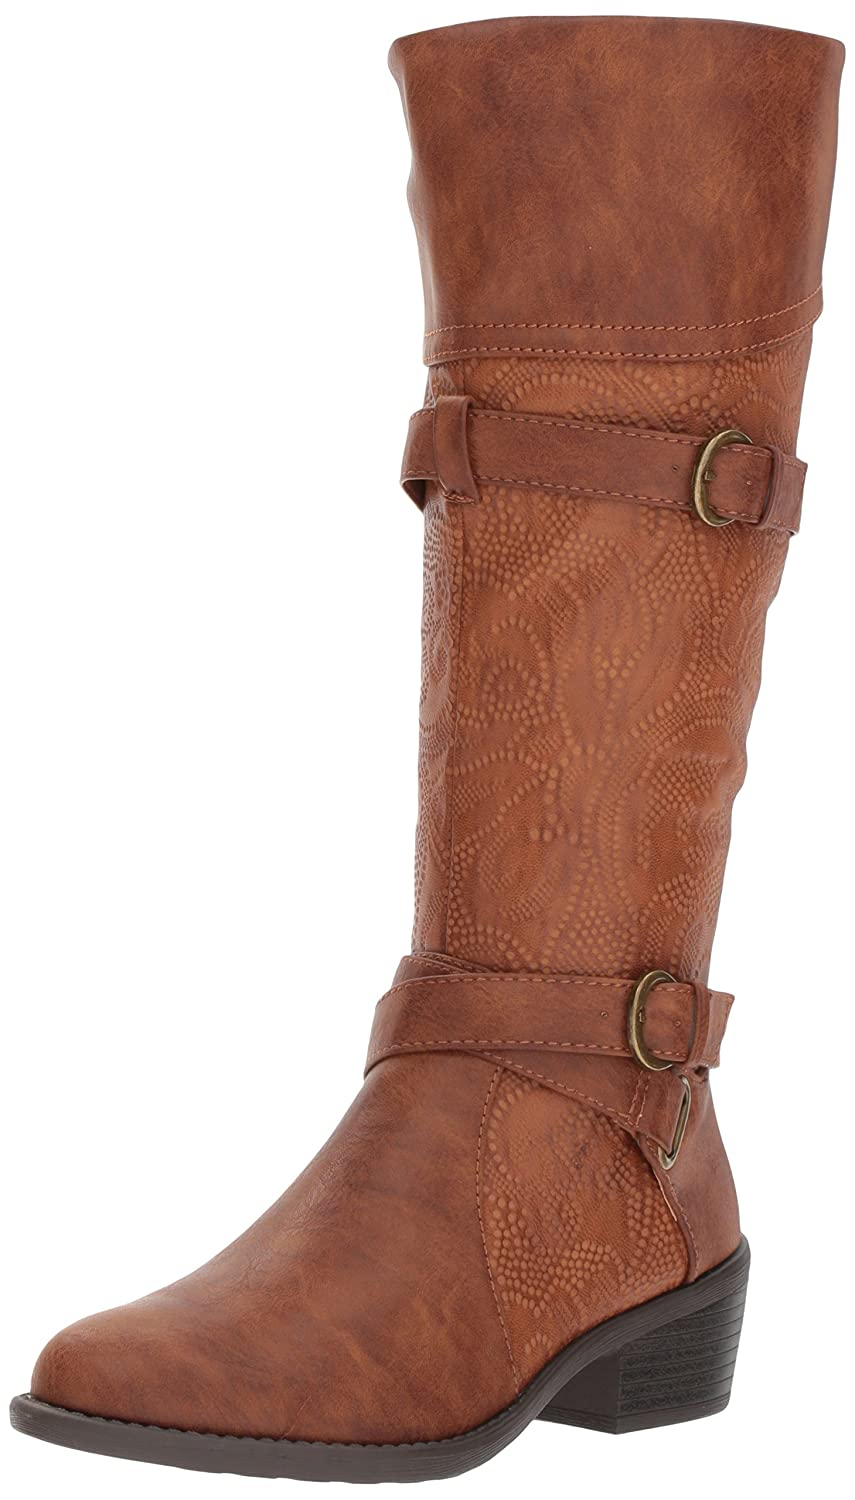 Easy Street Women's Kelsa Harness Boot B07263FF1B 9.5 B(M) US|Tan/Embossed